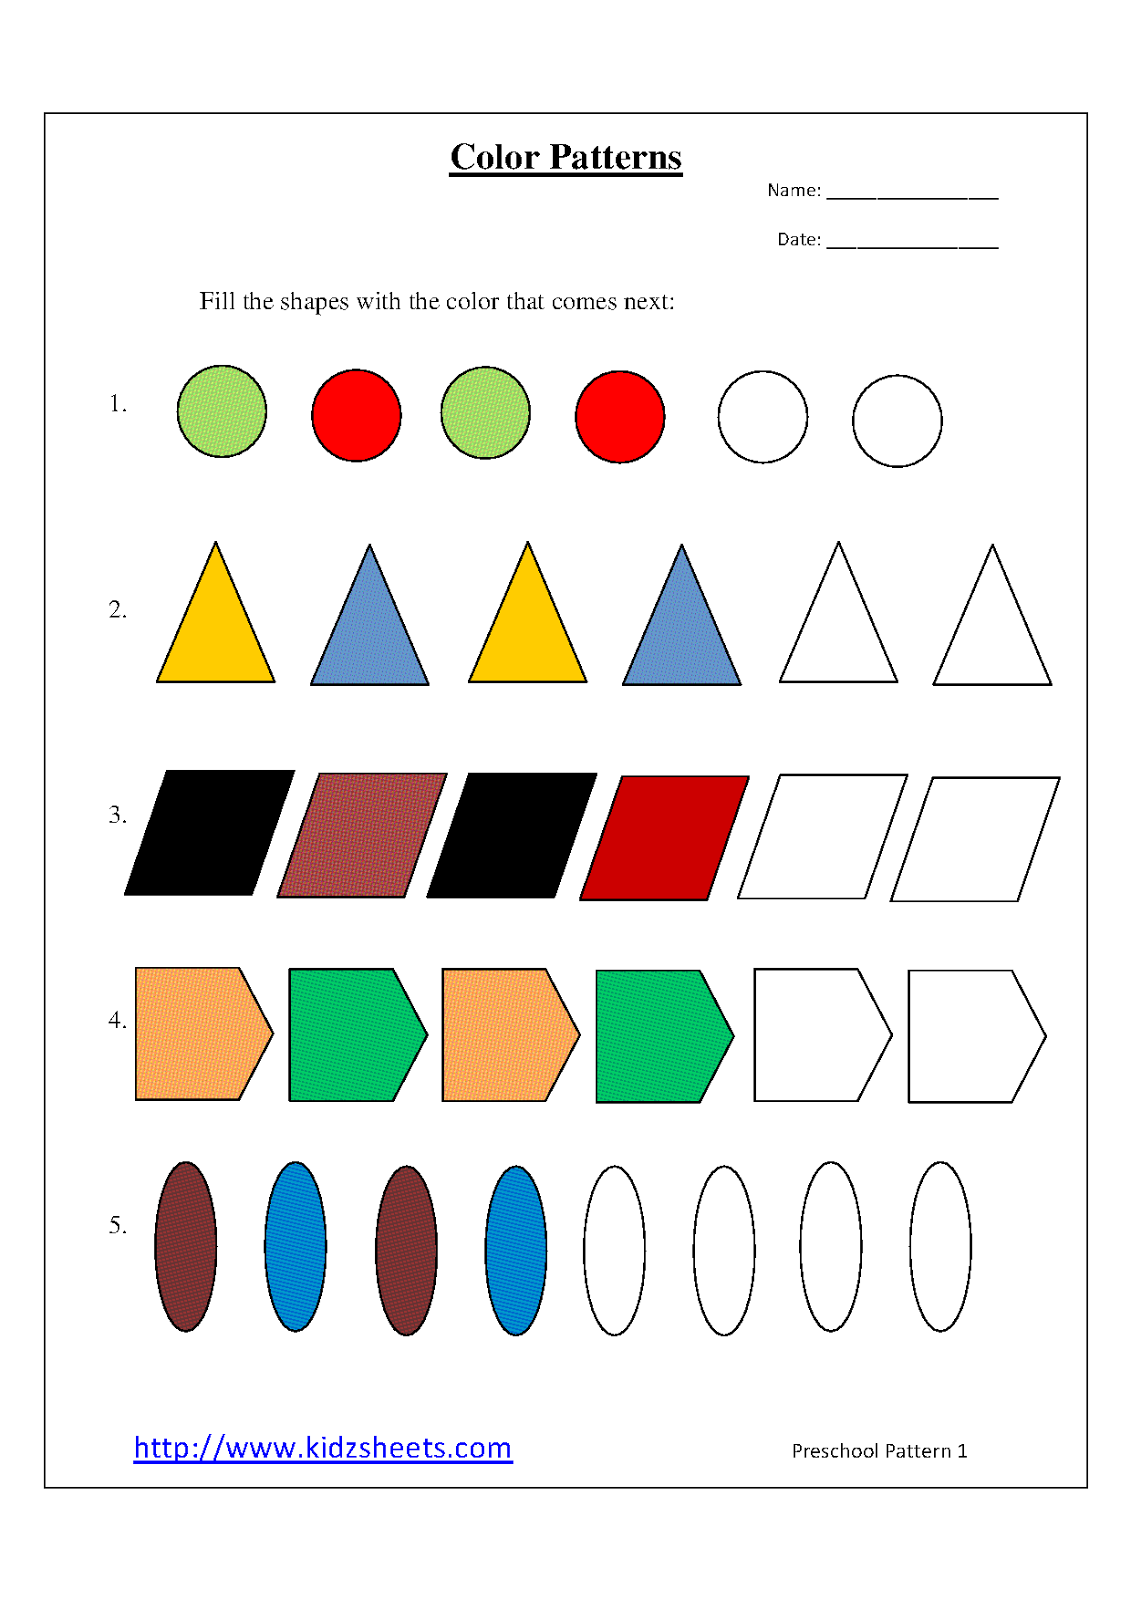 small resolution of Kidz Worksheets: Preschool Color Patterns Worksheet1